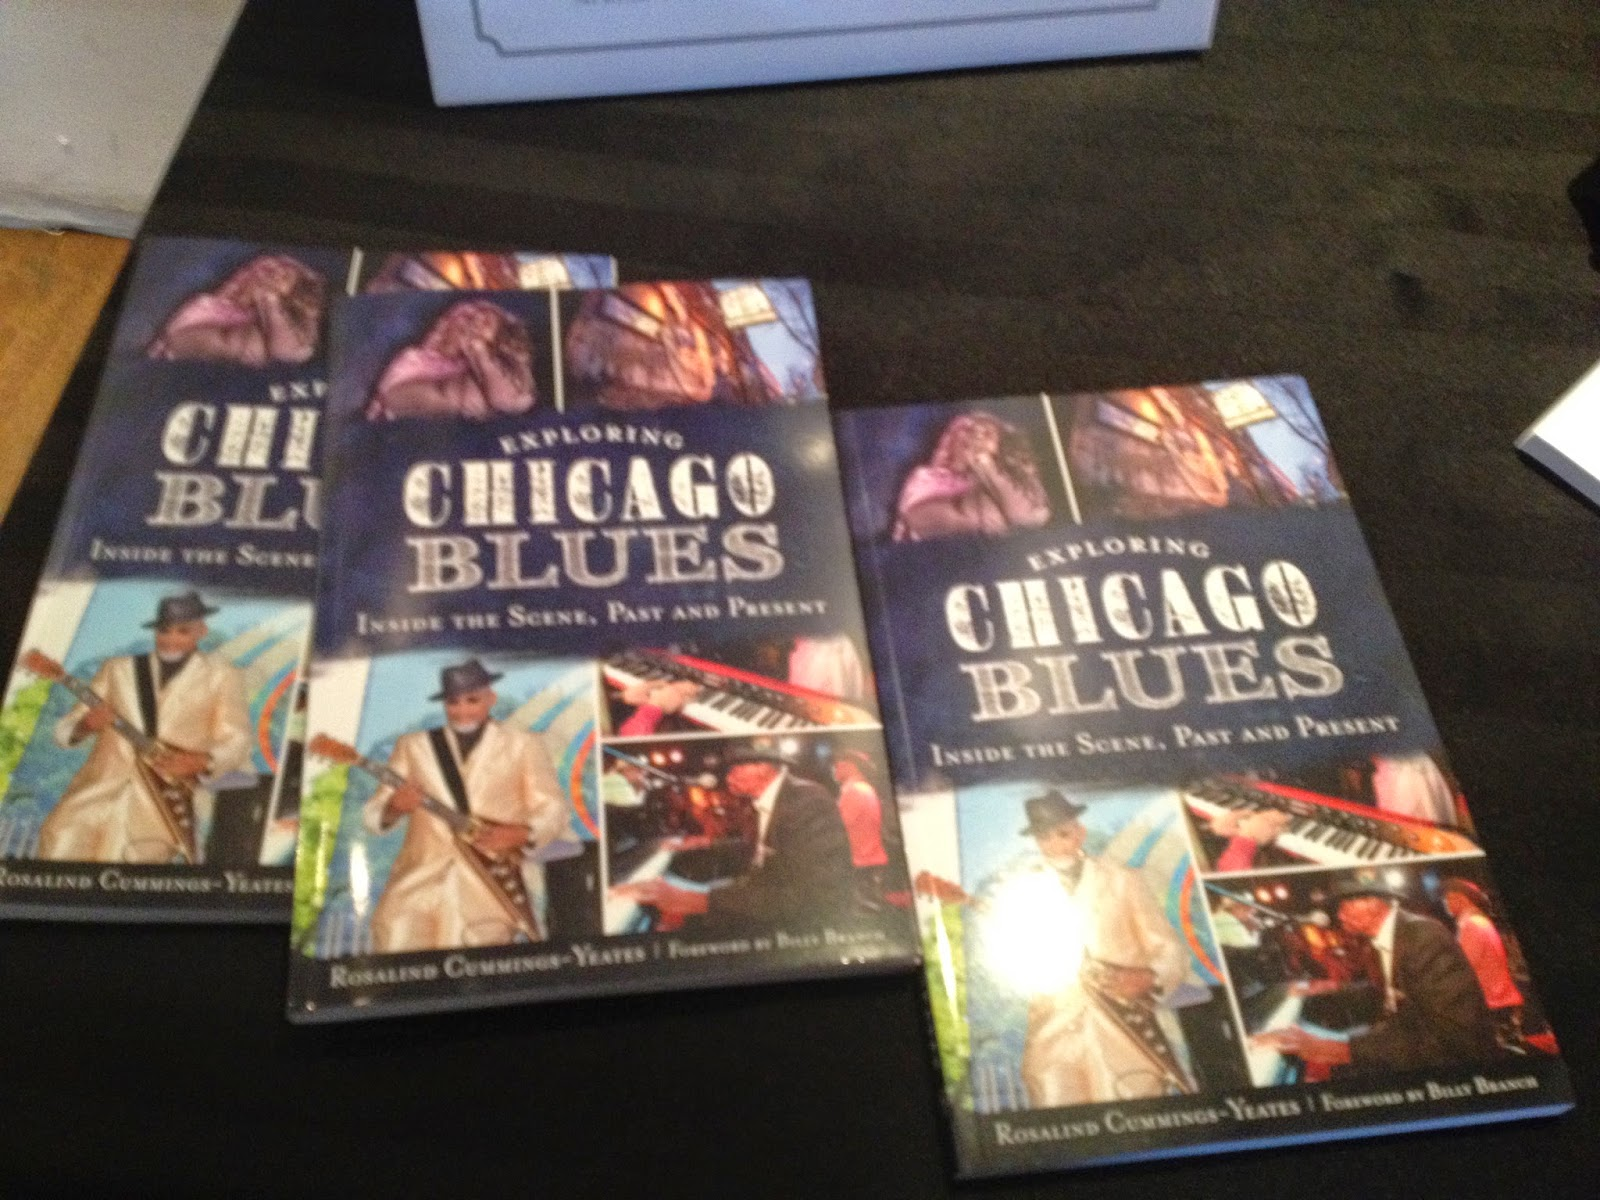 Exploring Chicago Blues Inside The Scene, Past and Present